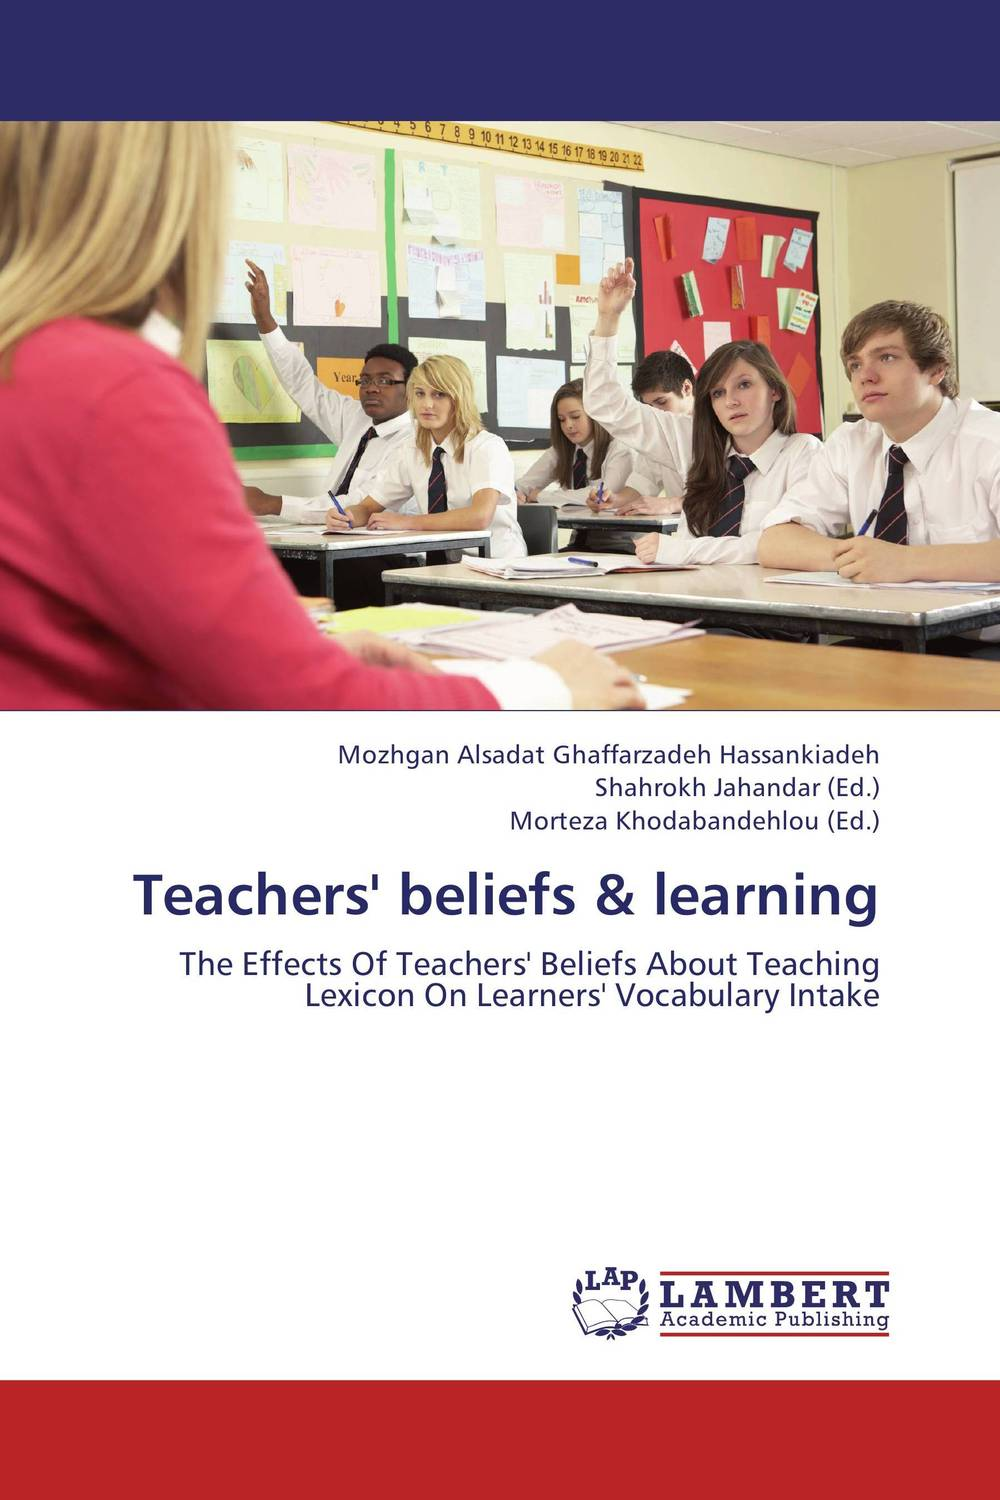 Teachers' beliefs & learning